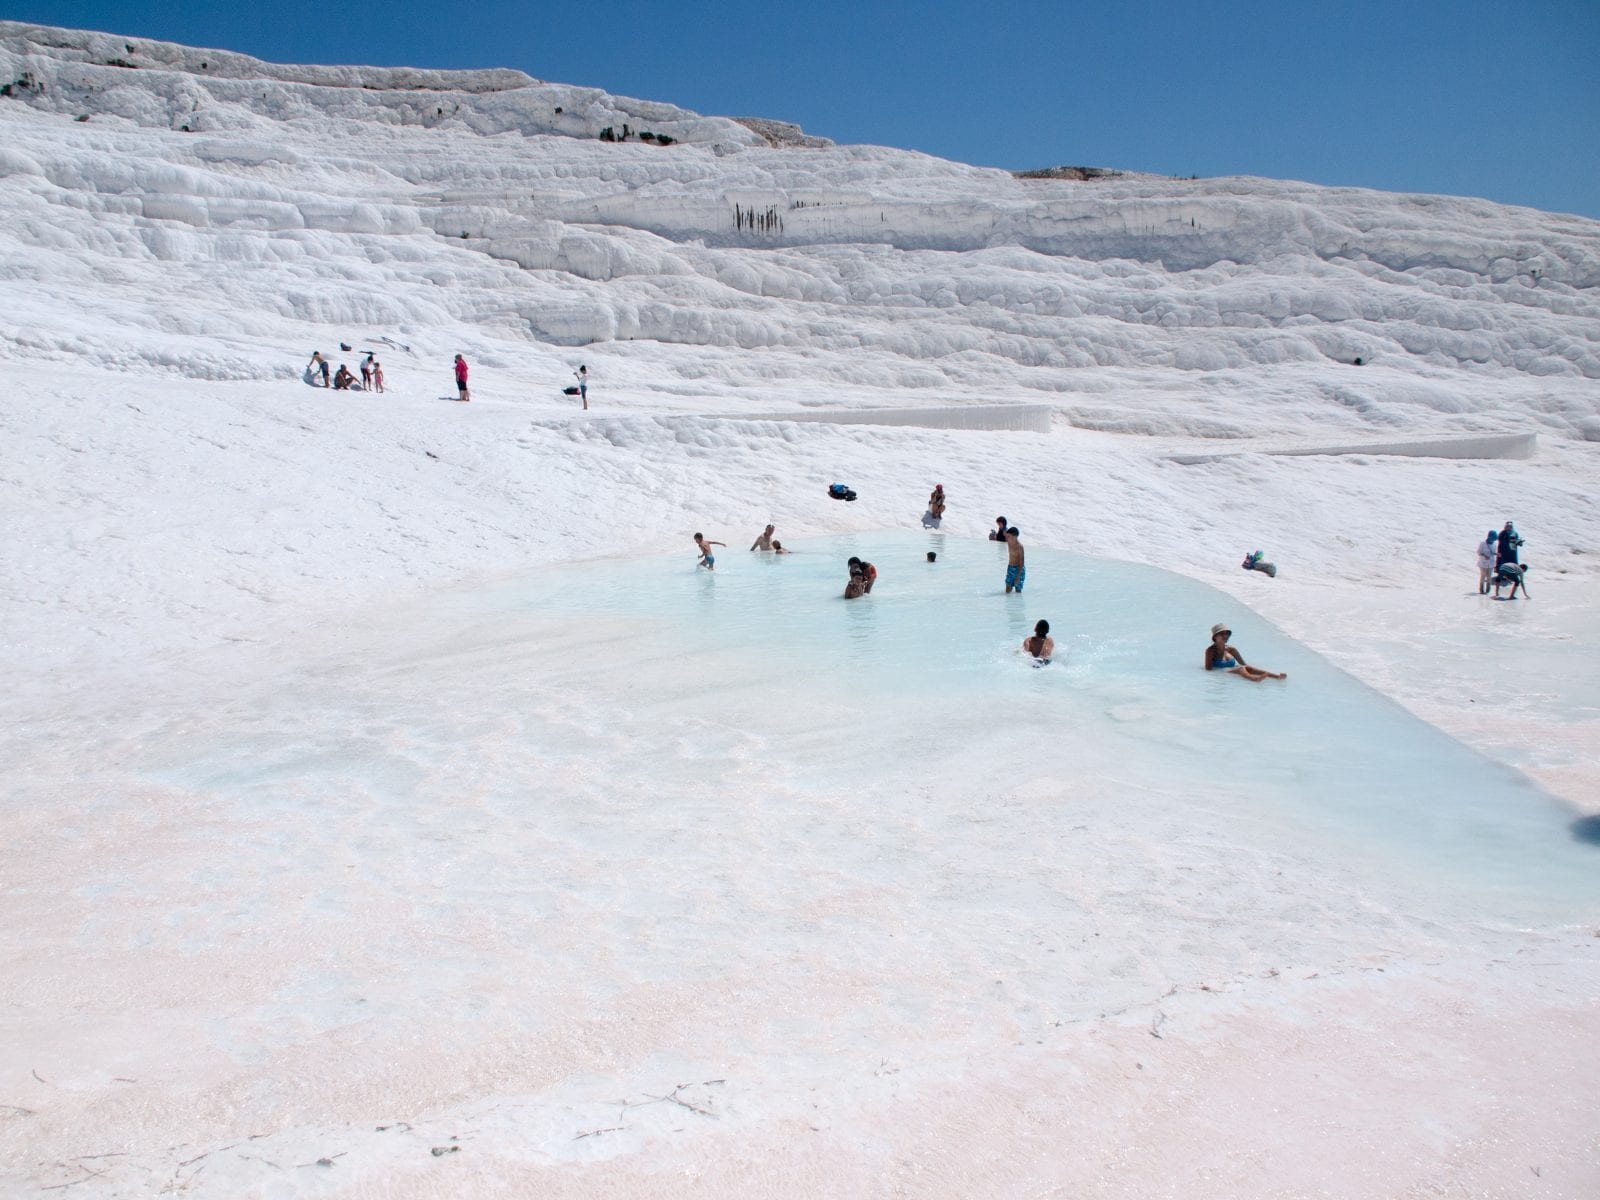 On Pamukkale mountain, Turkey